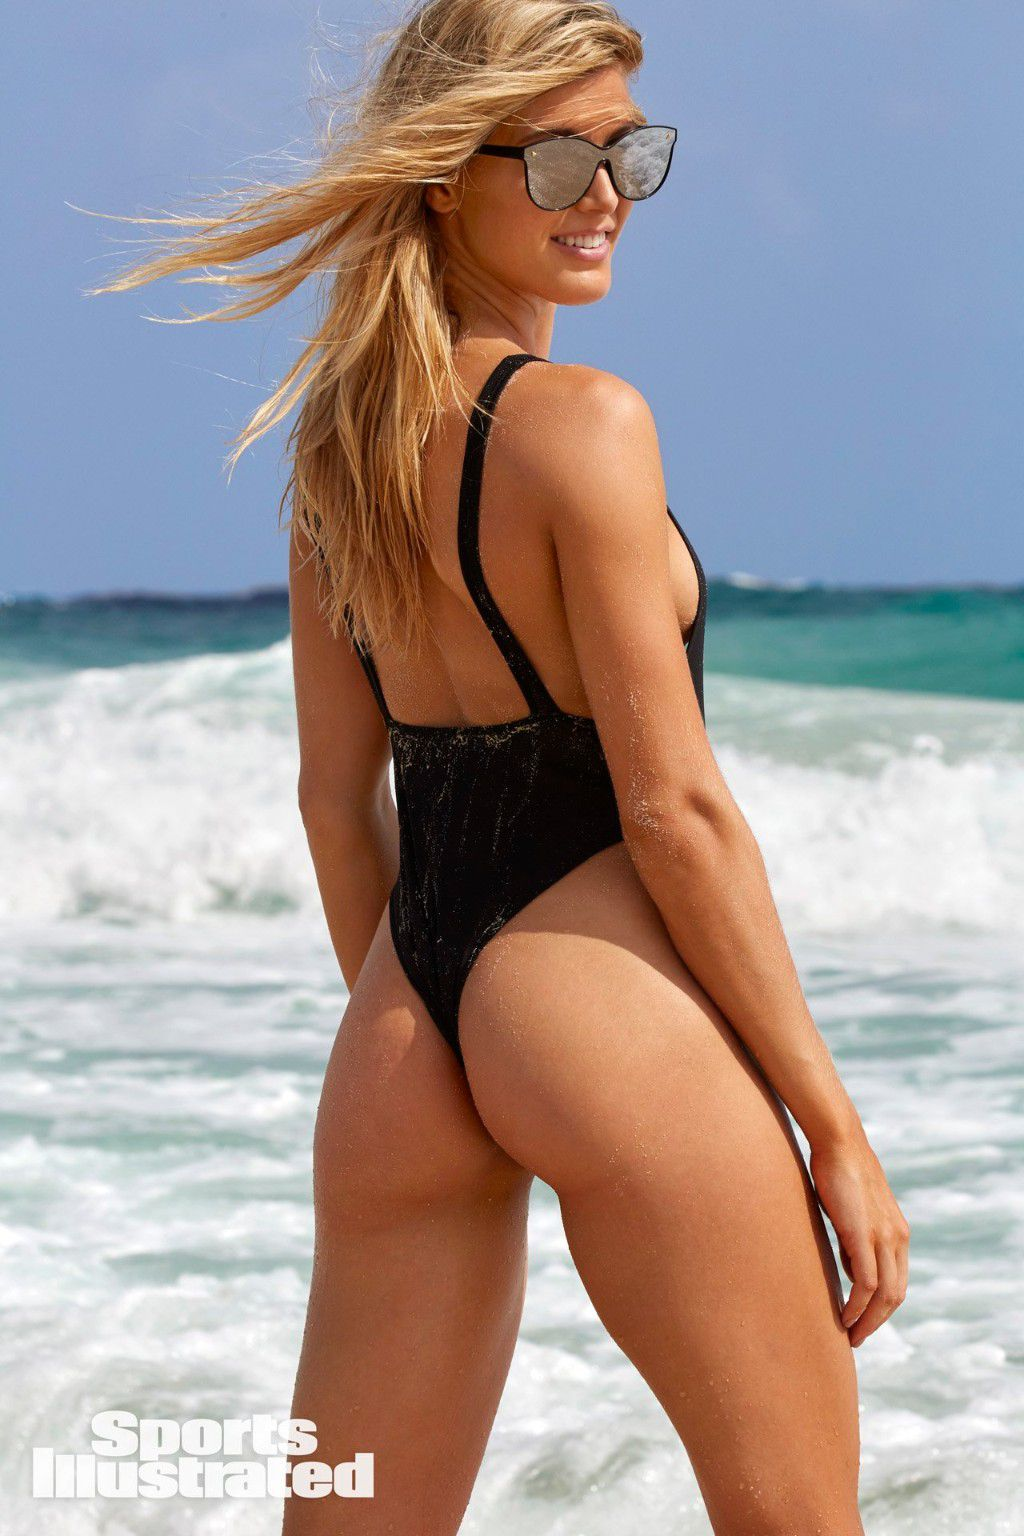 eugenie-bouchard-super-sexy-in-sports-illustrated-swimsuit-issue-2018-16